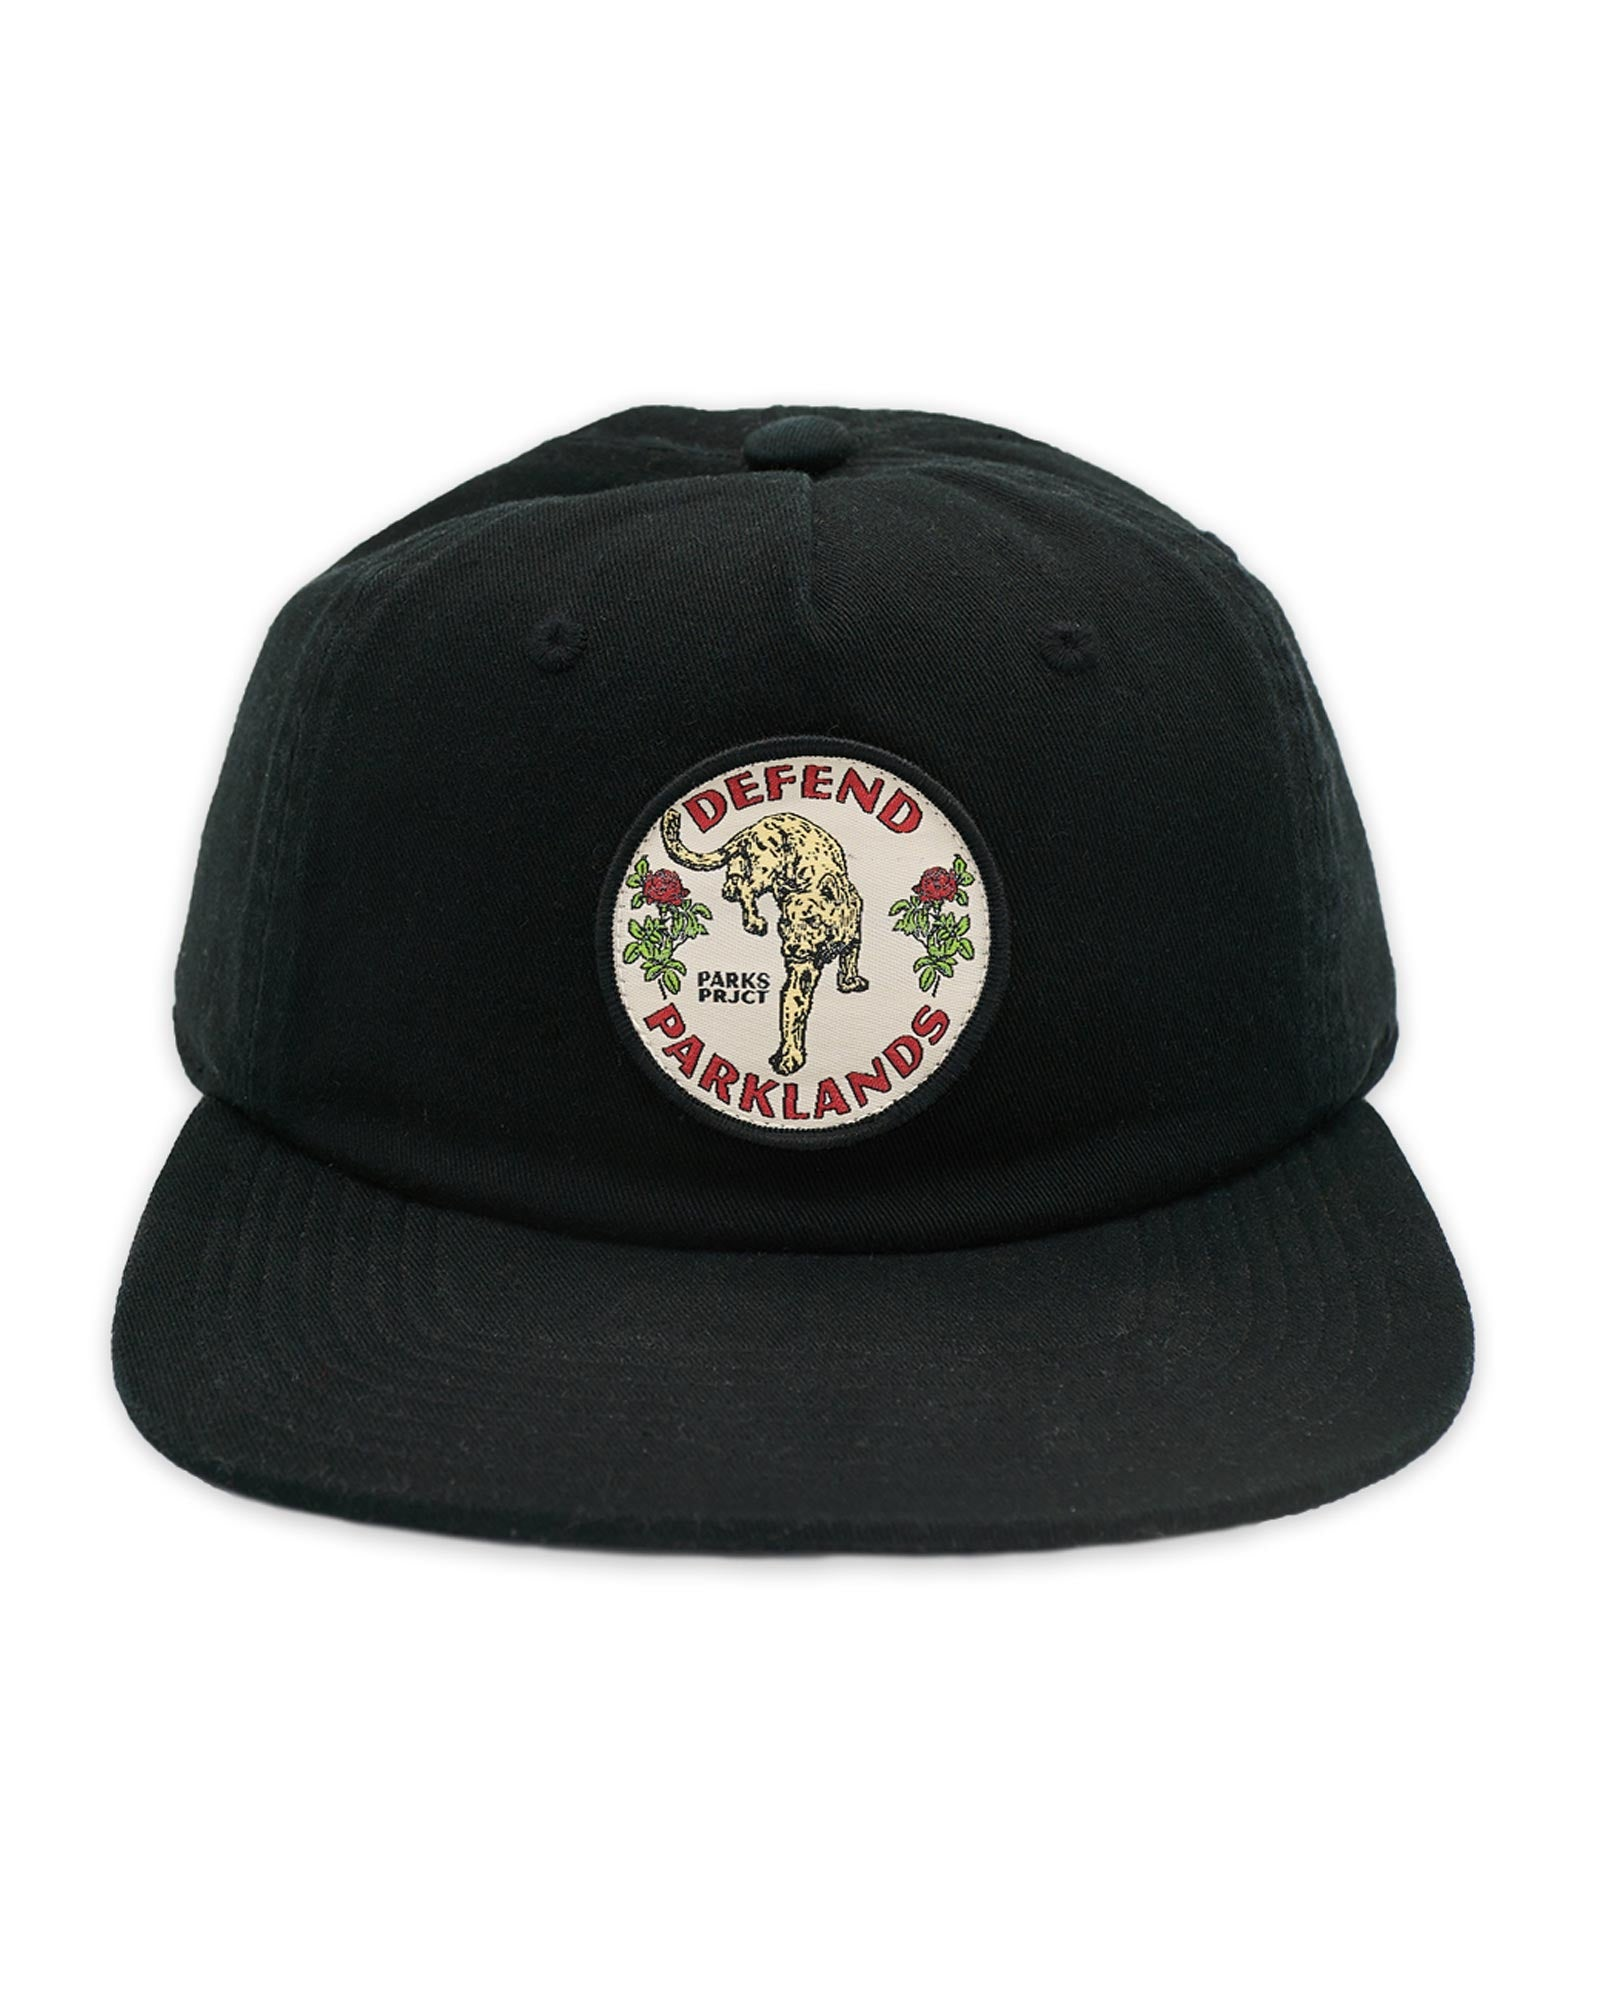 Defend Prowler Hat | Parks Project | National Park Hat